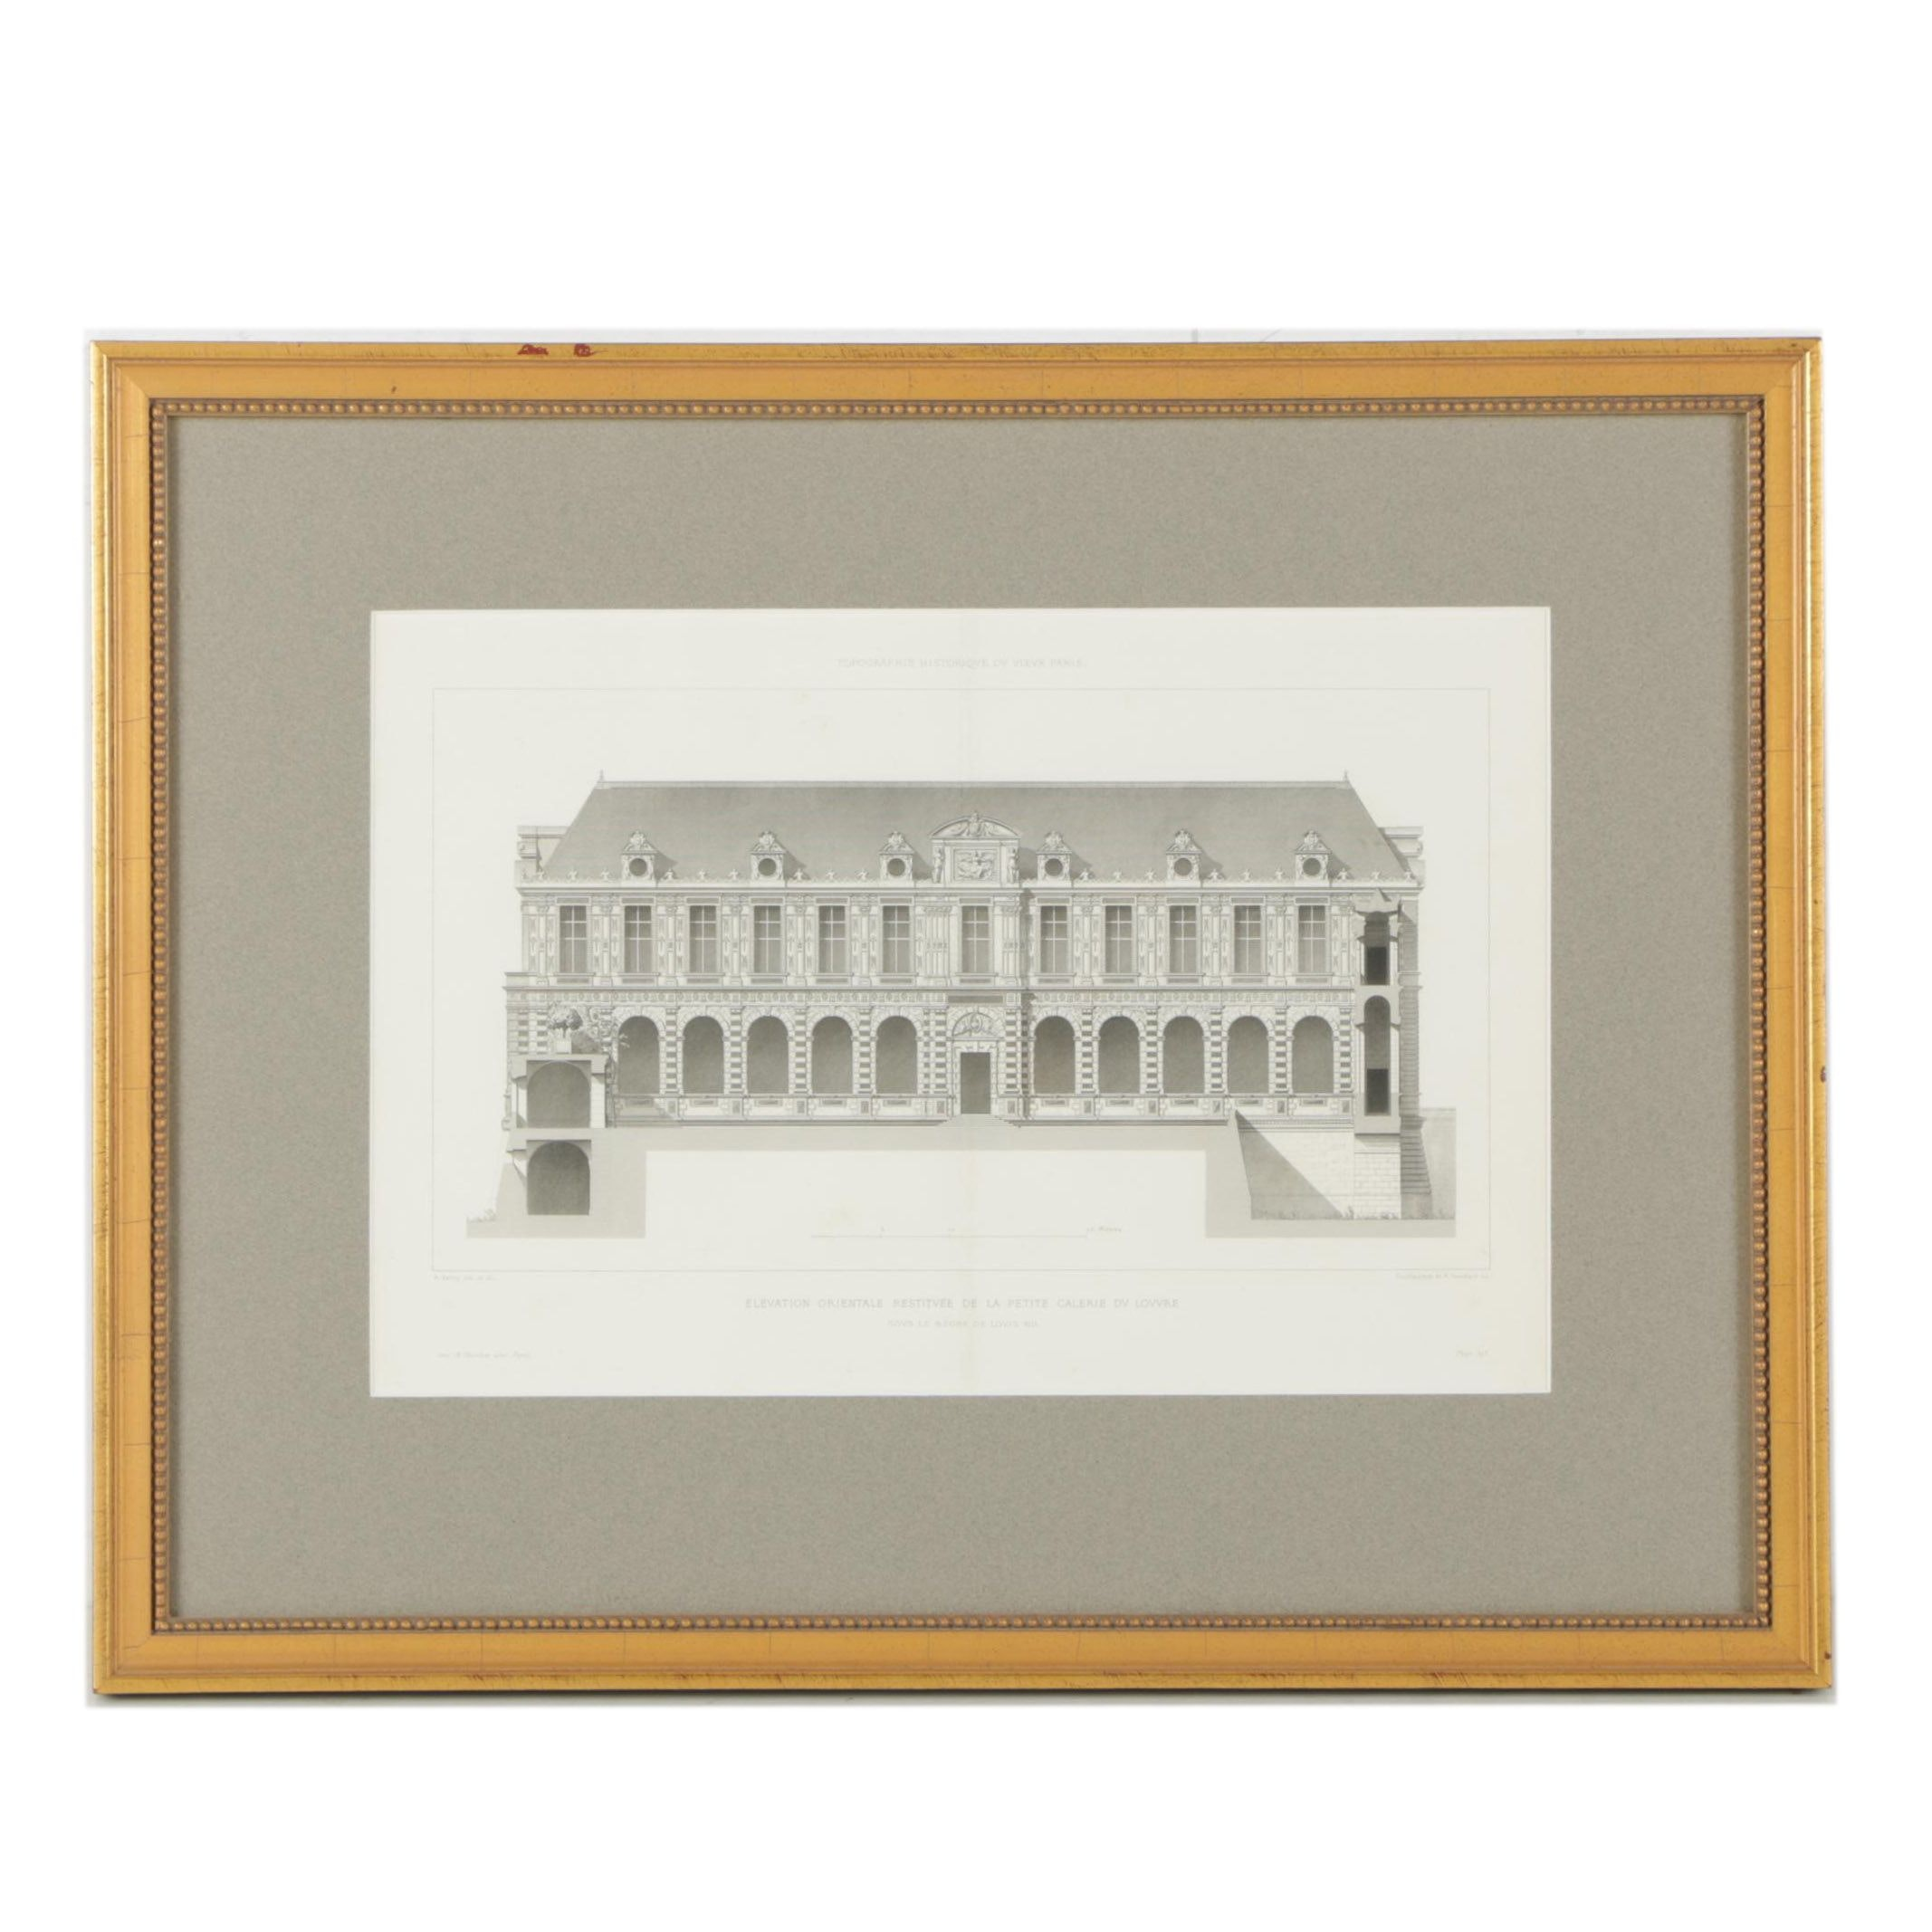 Antique French Architectural Lithograph of the Louvre's Galerie d'Apollon